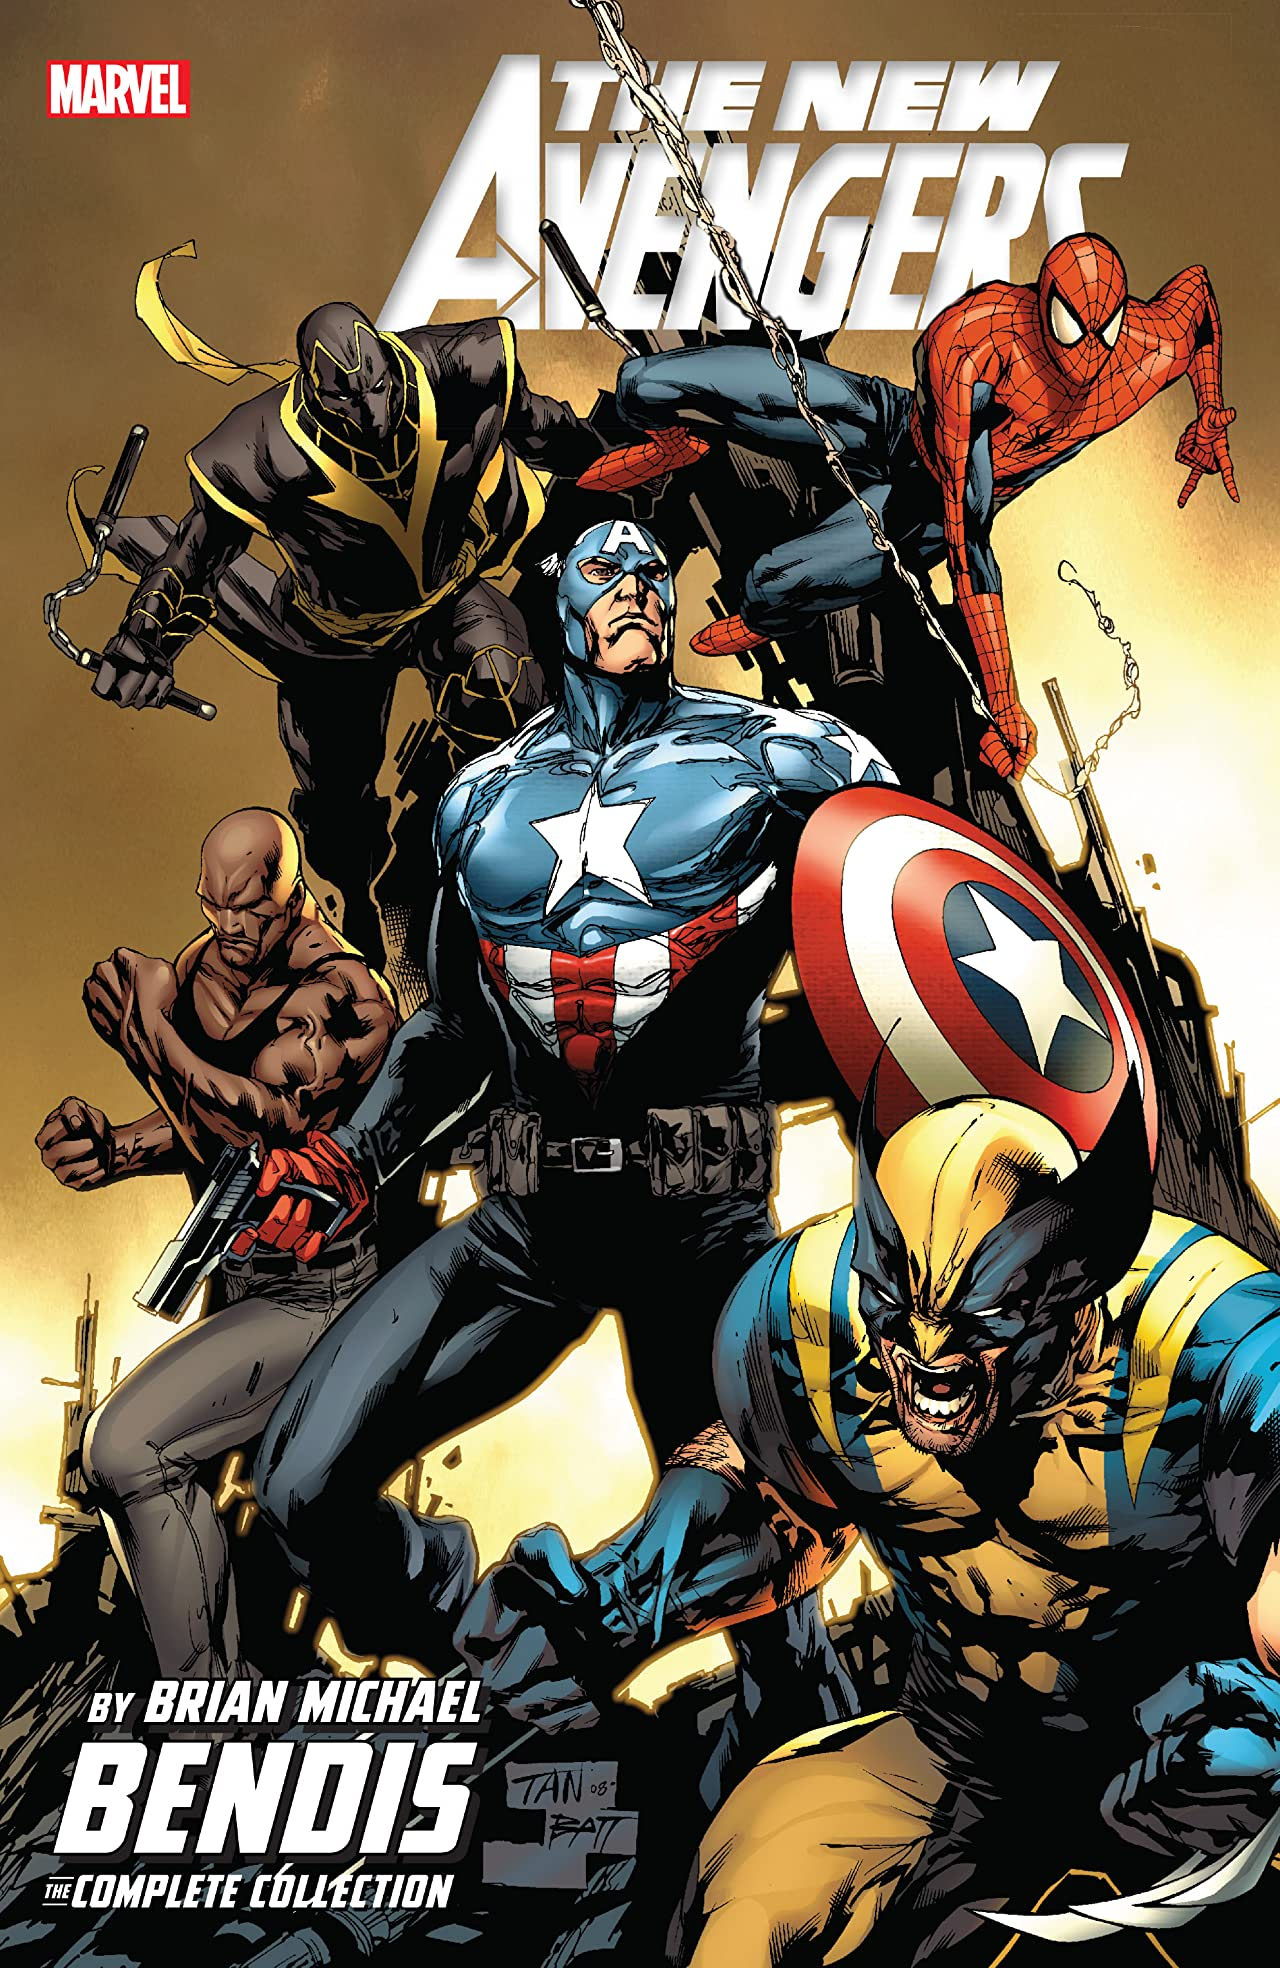 New Avengers by Brian Michael Bendis: The Complete Collection Tome 4